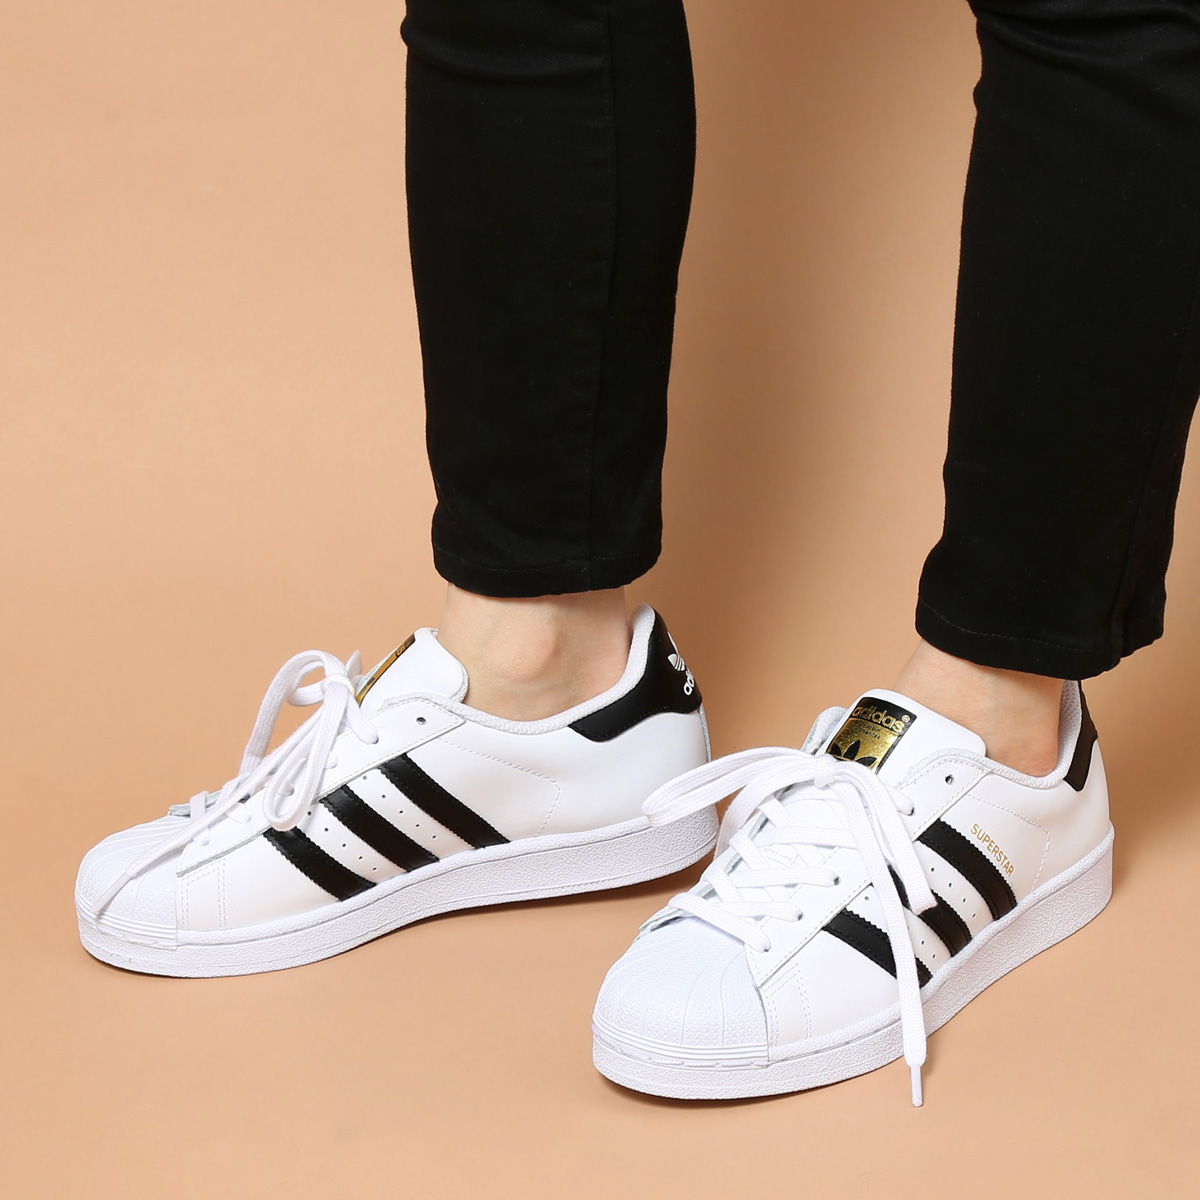 60038 95 adidas Originals Superstar W Supplier ColourFtwr